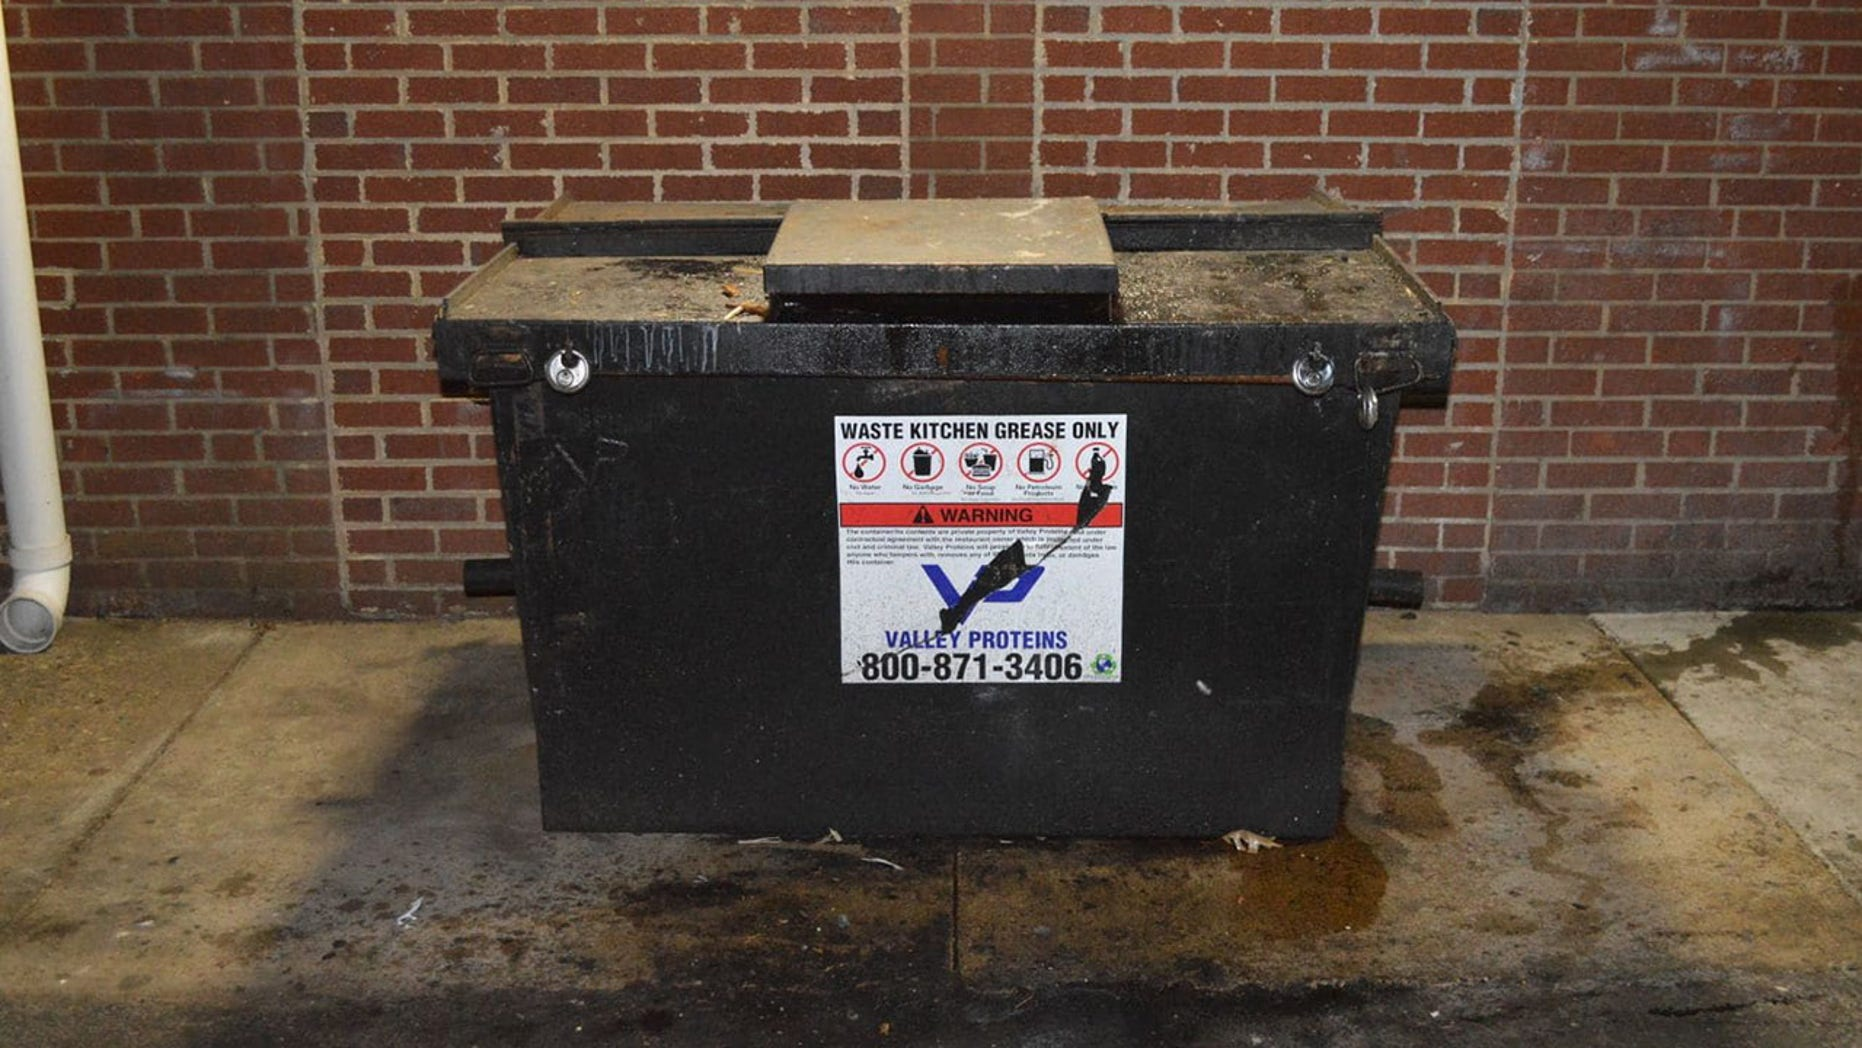 Grease was stolen from this Fairfax County dumpster on March 26.